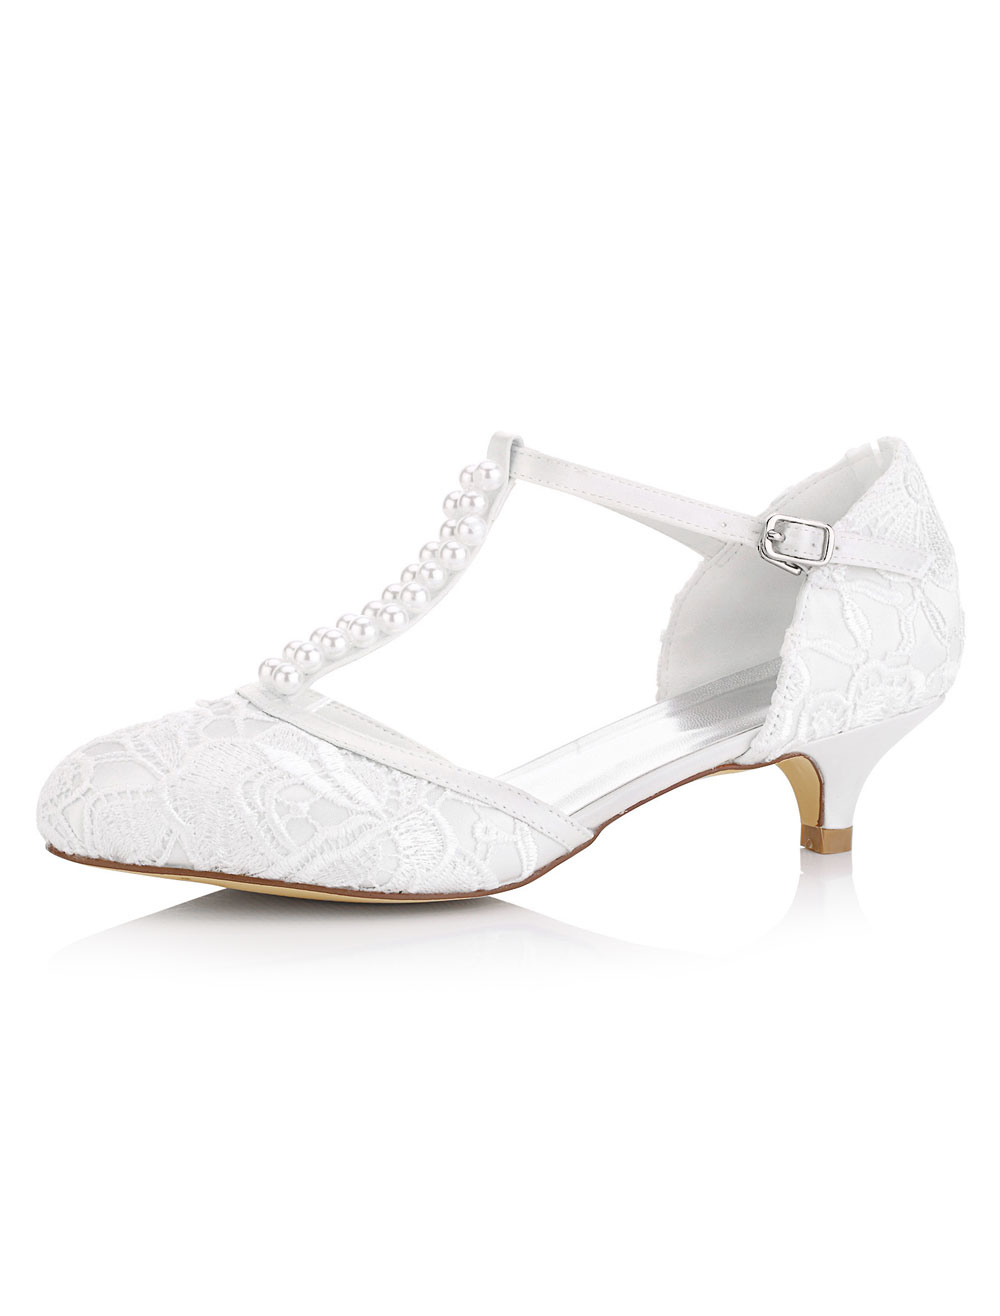 White Wedding Shoes Kitten Heel Pearls Satin T-Type Bridal Shoes Vintage Shoes